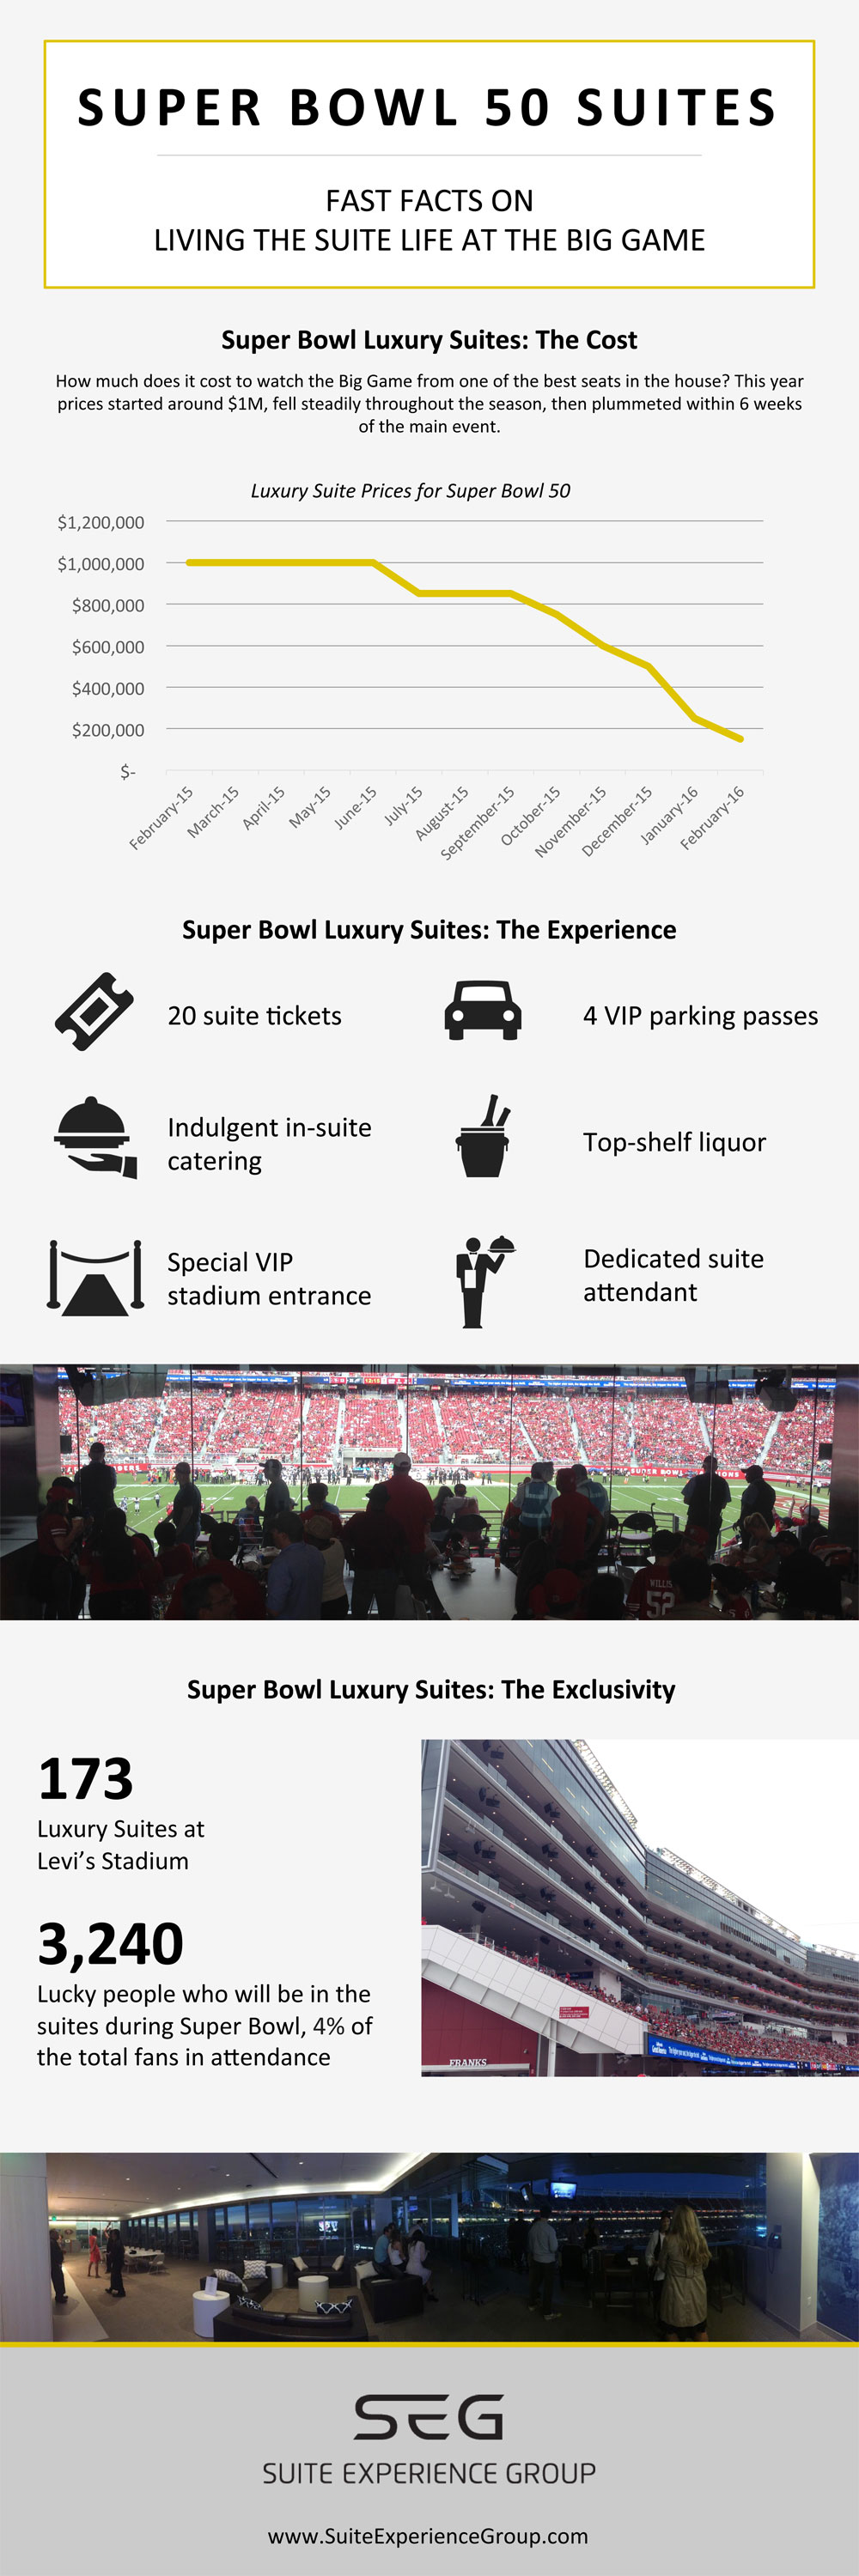 Super Bowl 50 Fast Facts Infographic